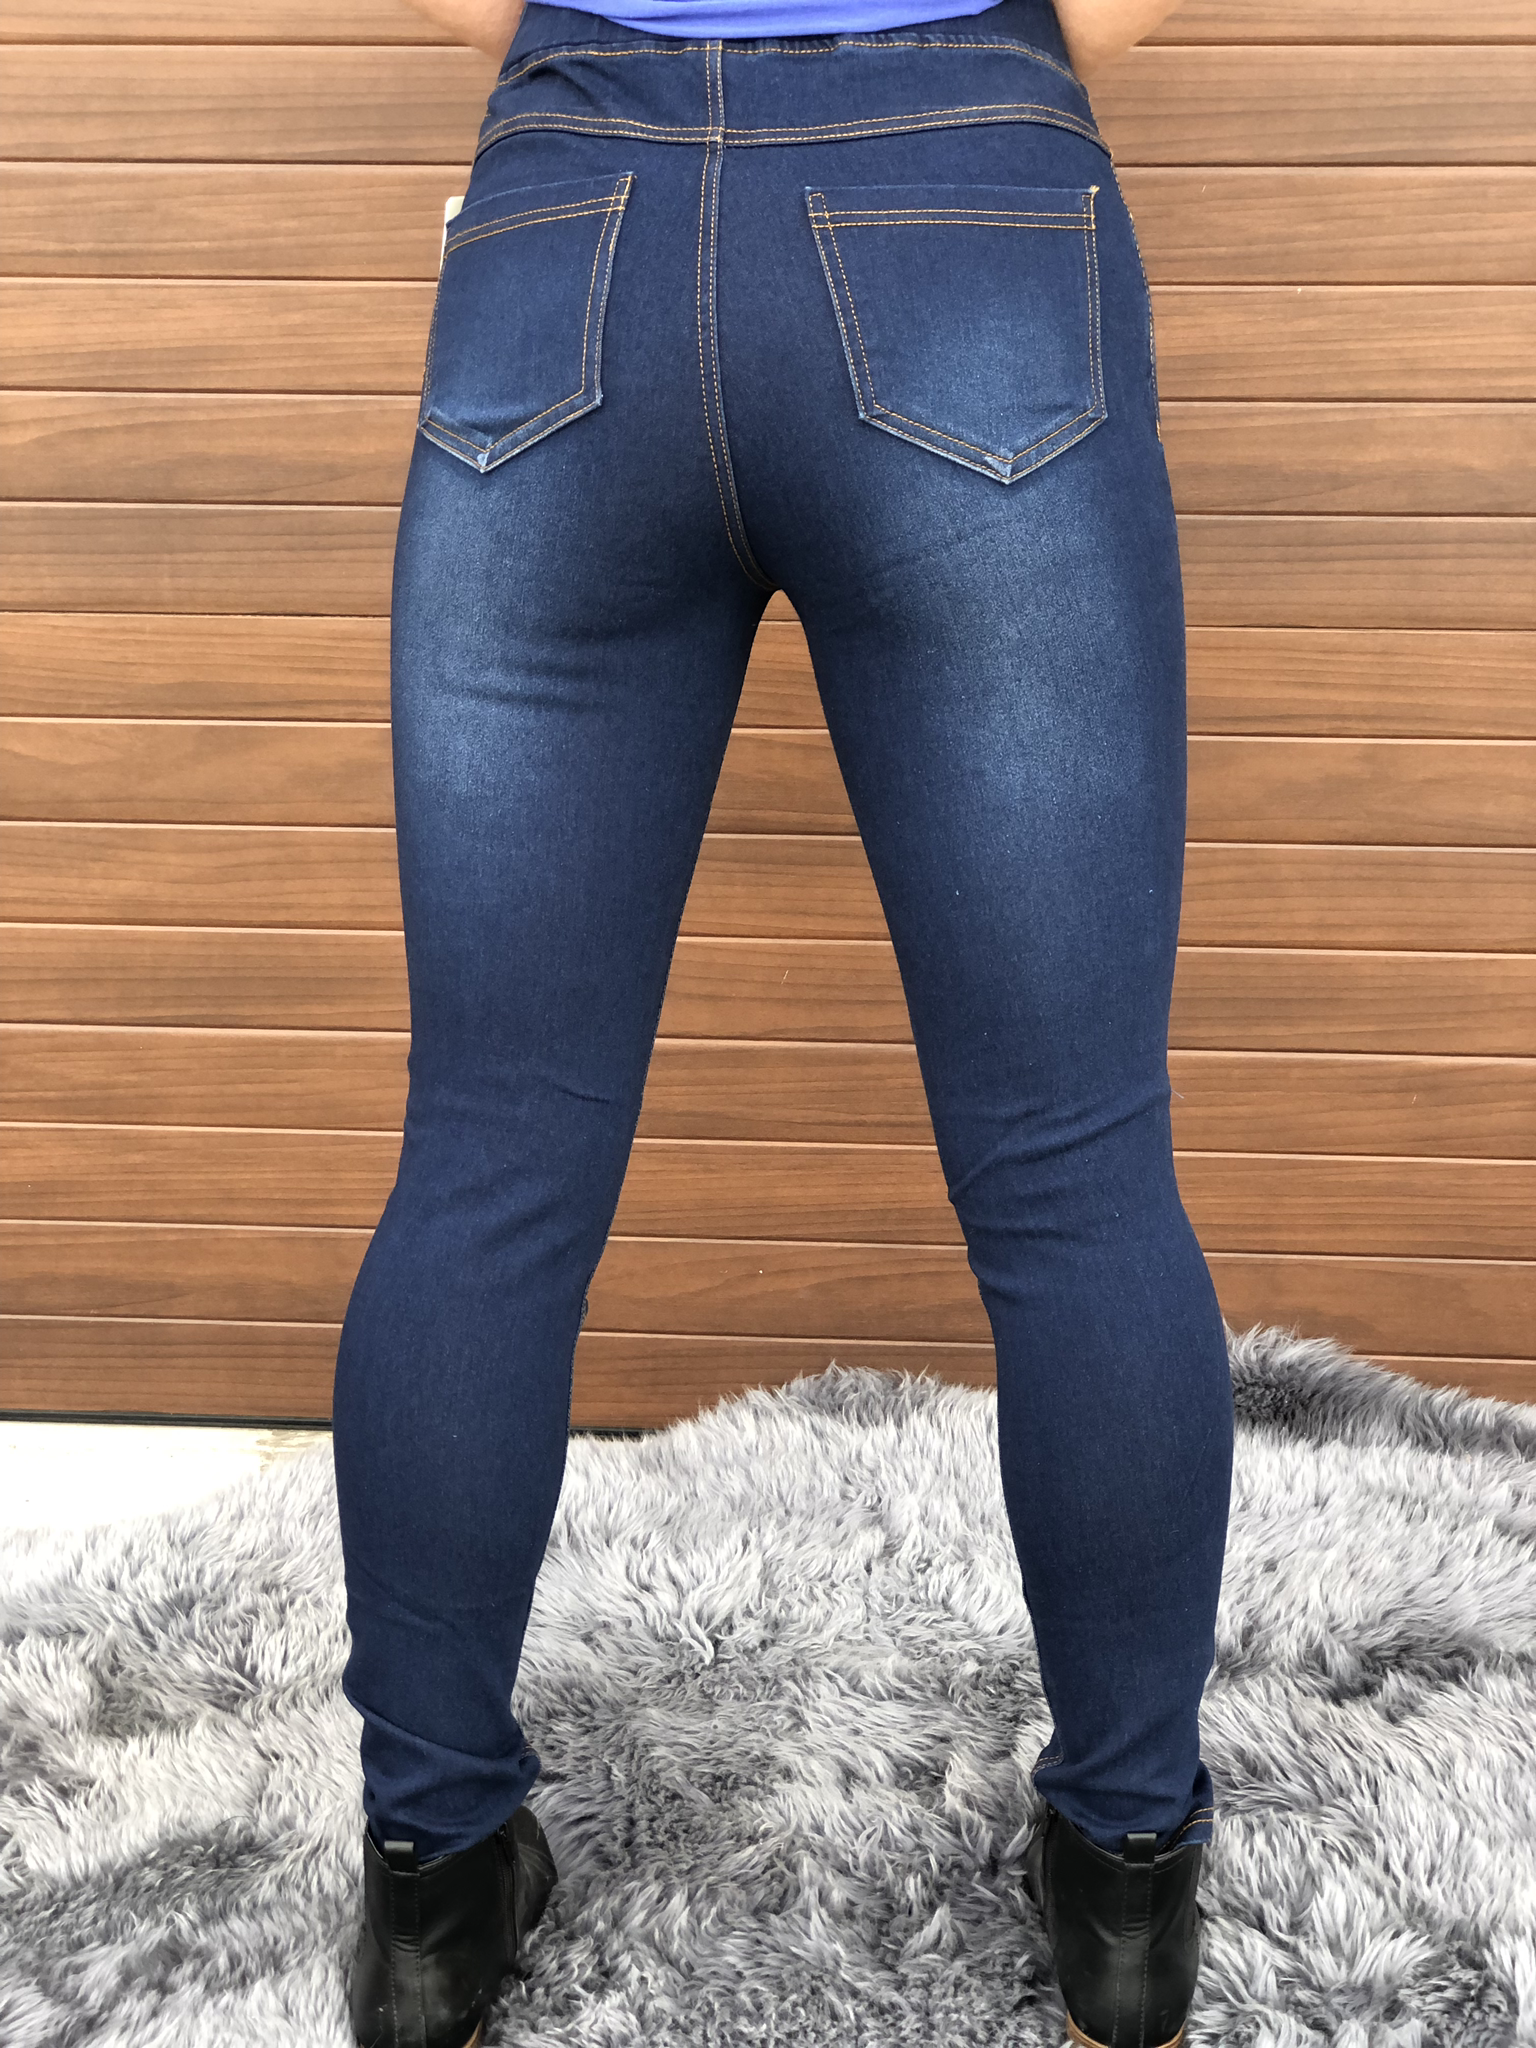 Crazy In Comfort Jeggings - 3981